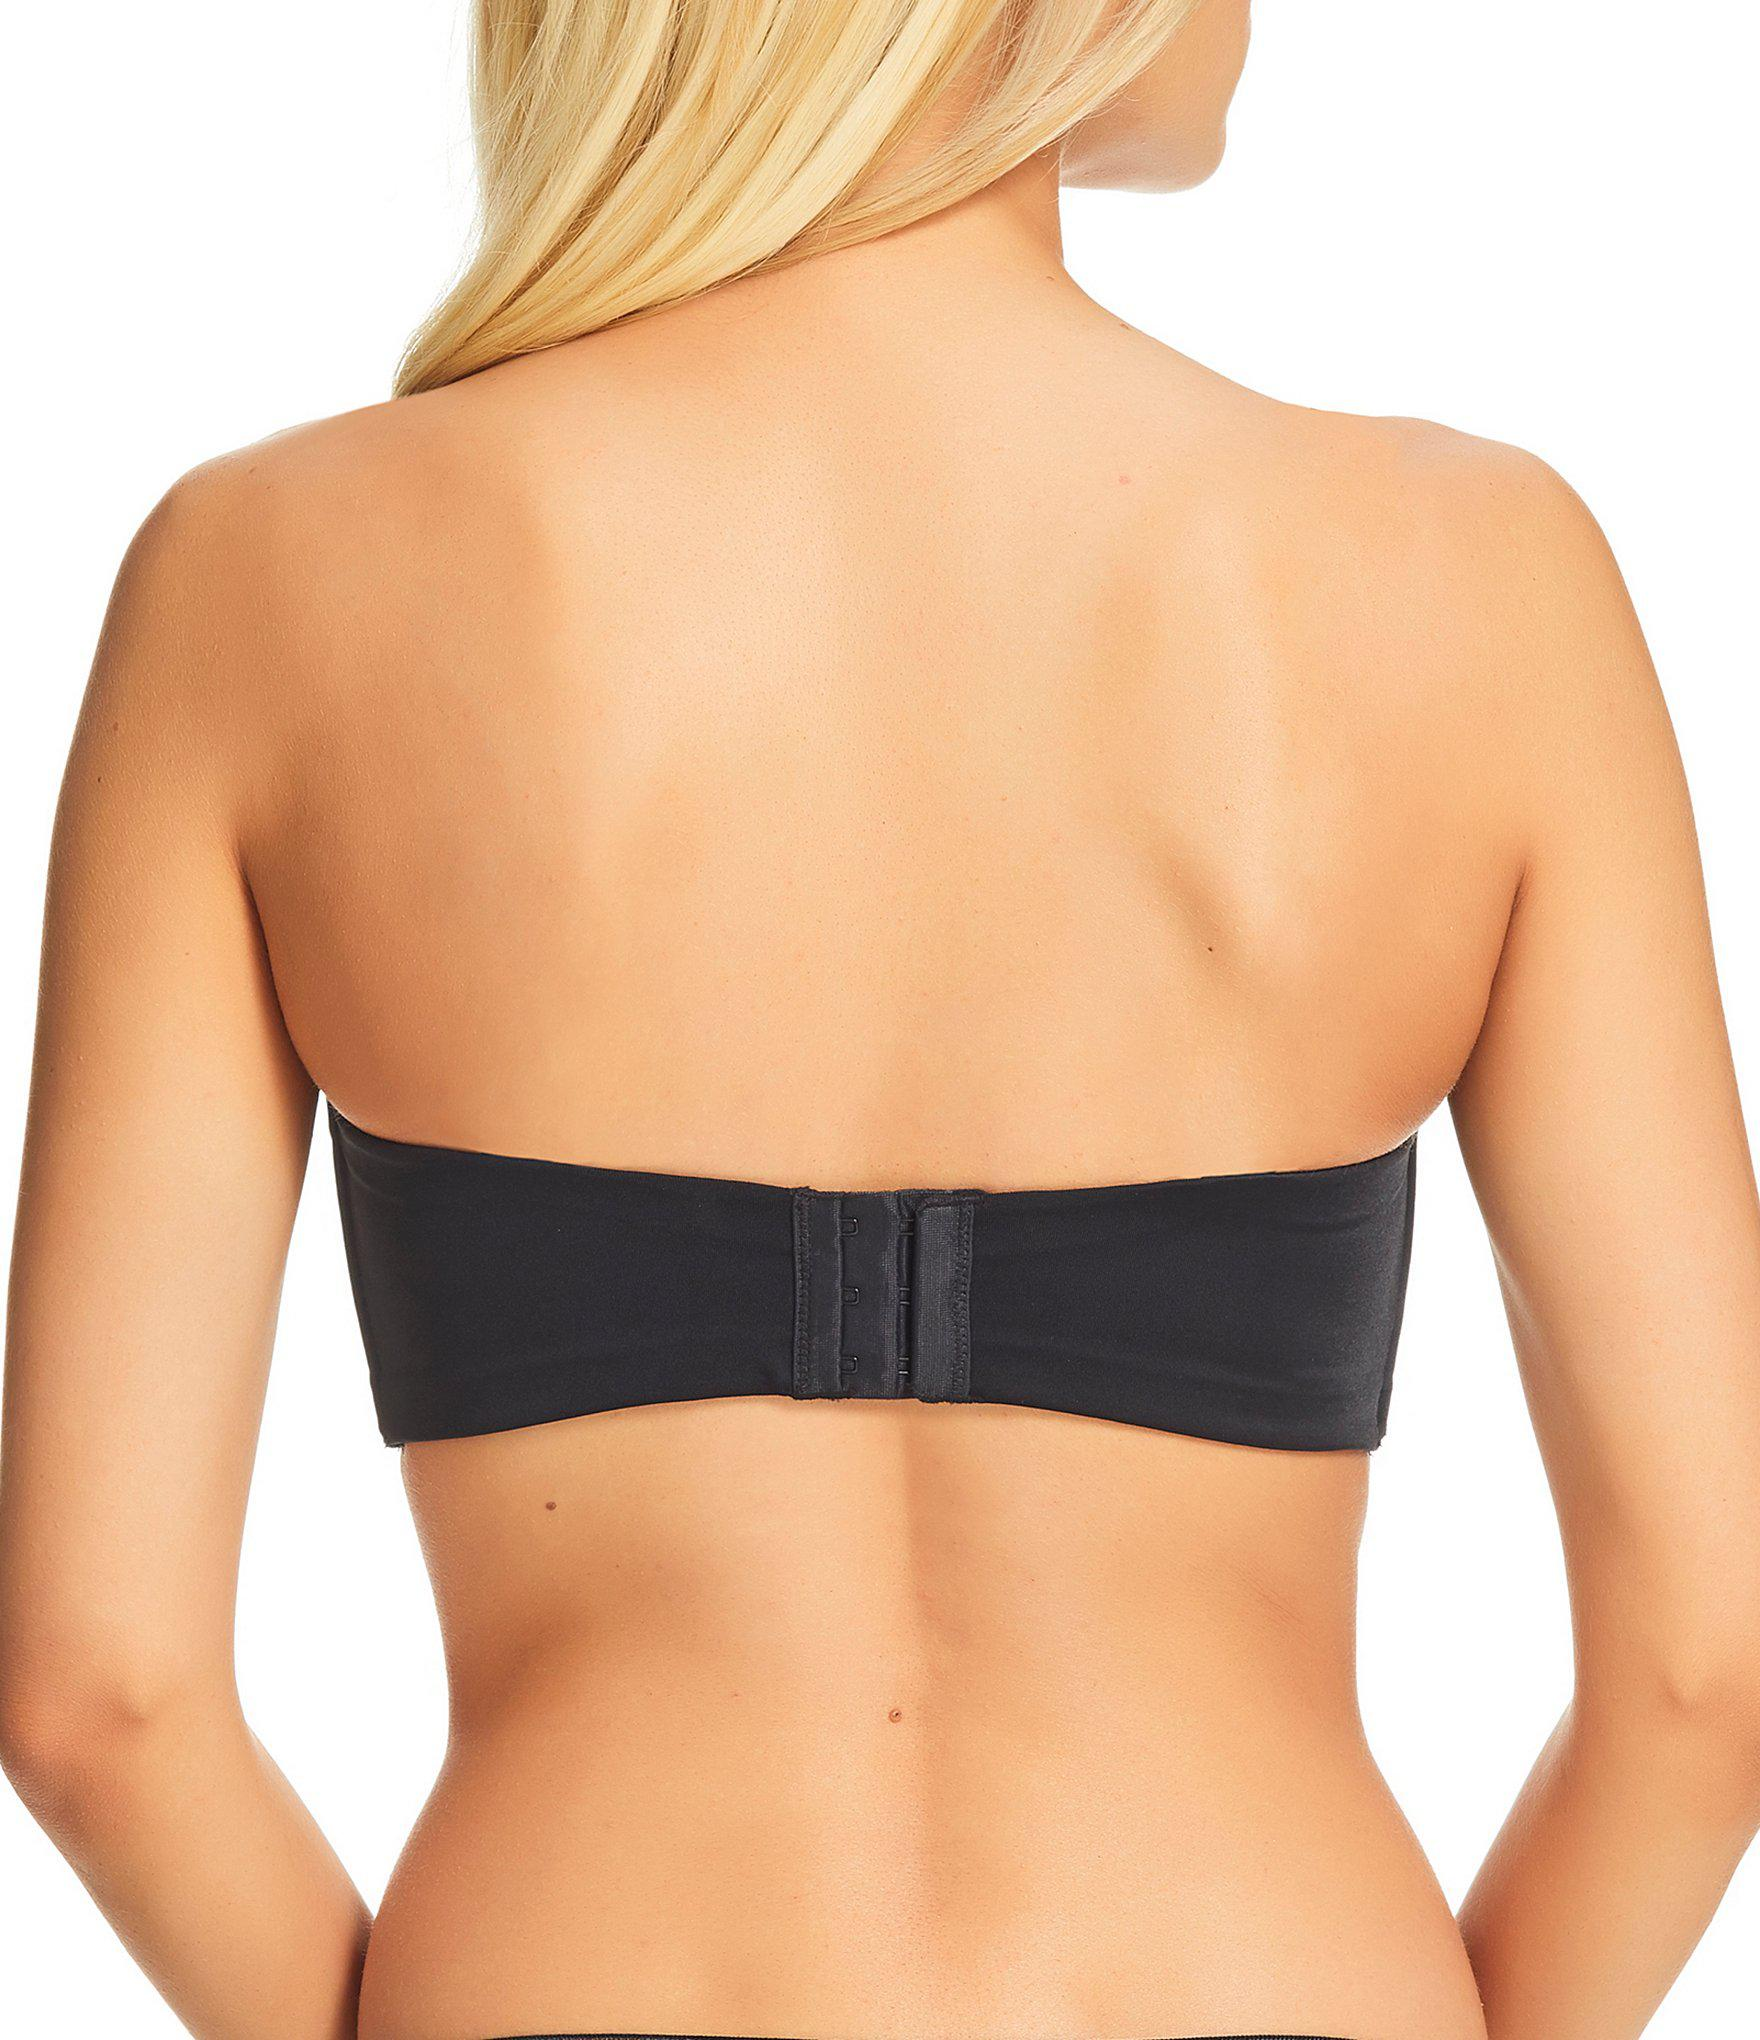 a4aad8a43920b Fine Lines - Black Confidence Underwire Bandeau Bra - Lyst. View fullscreen